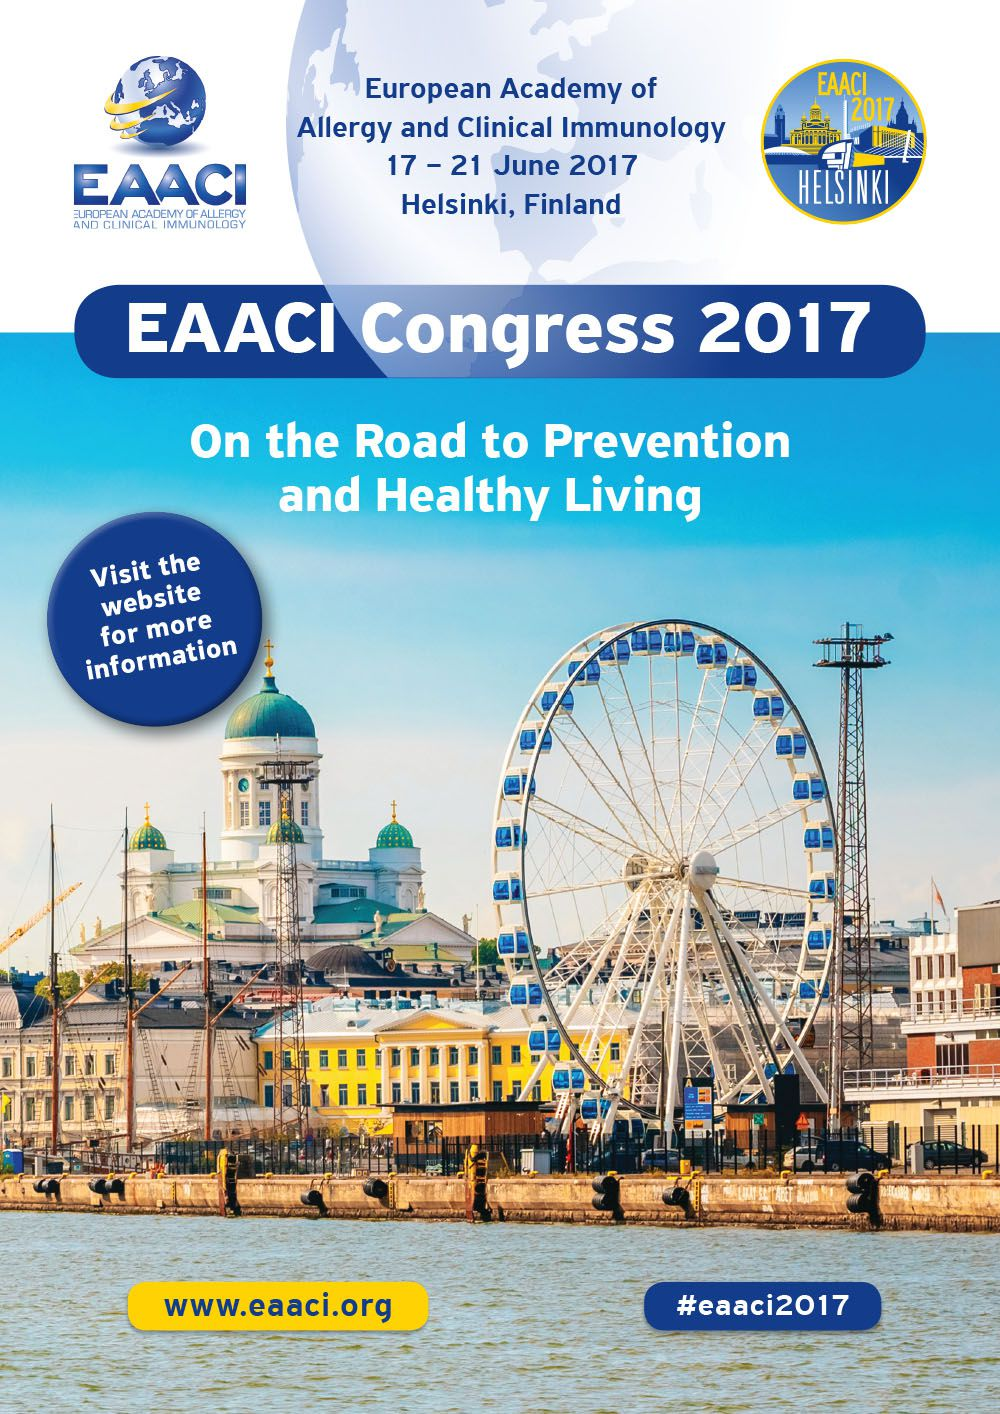 EAACI Congress 2017 - Save the date